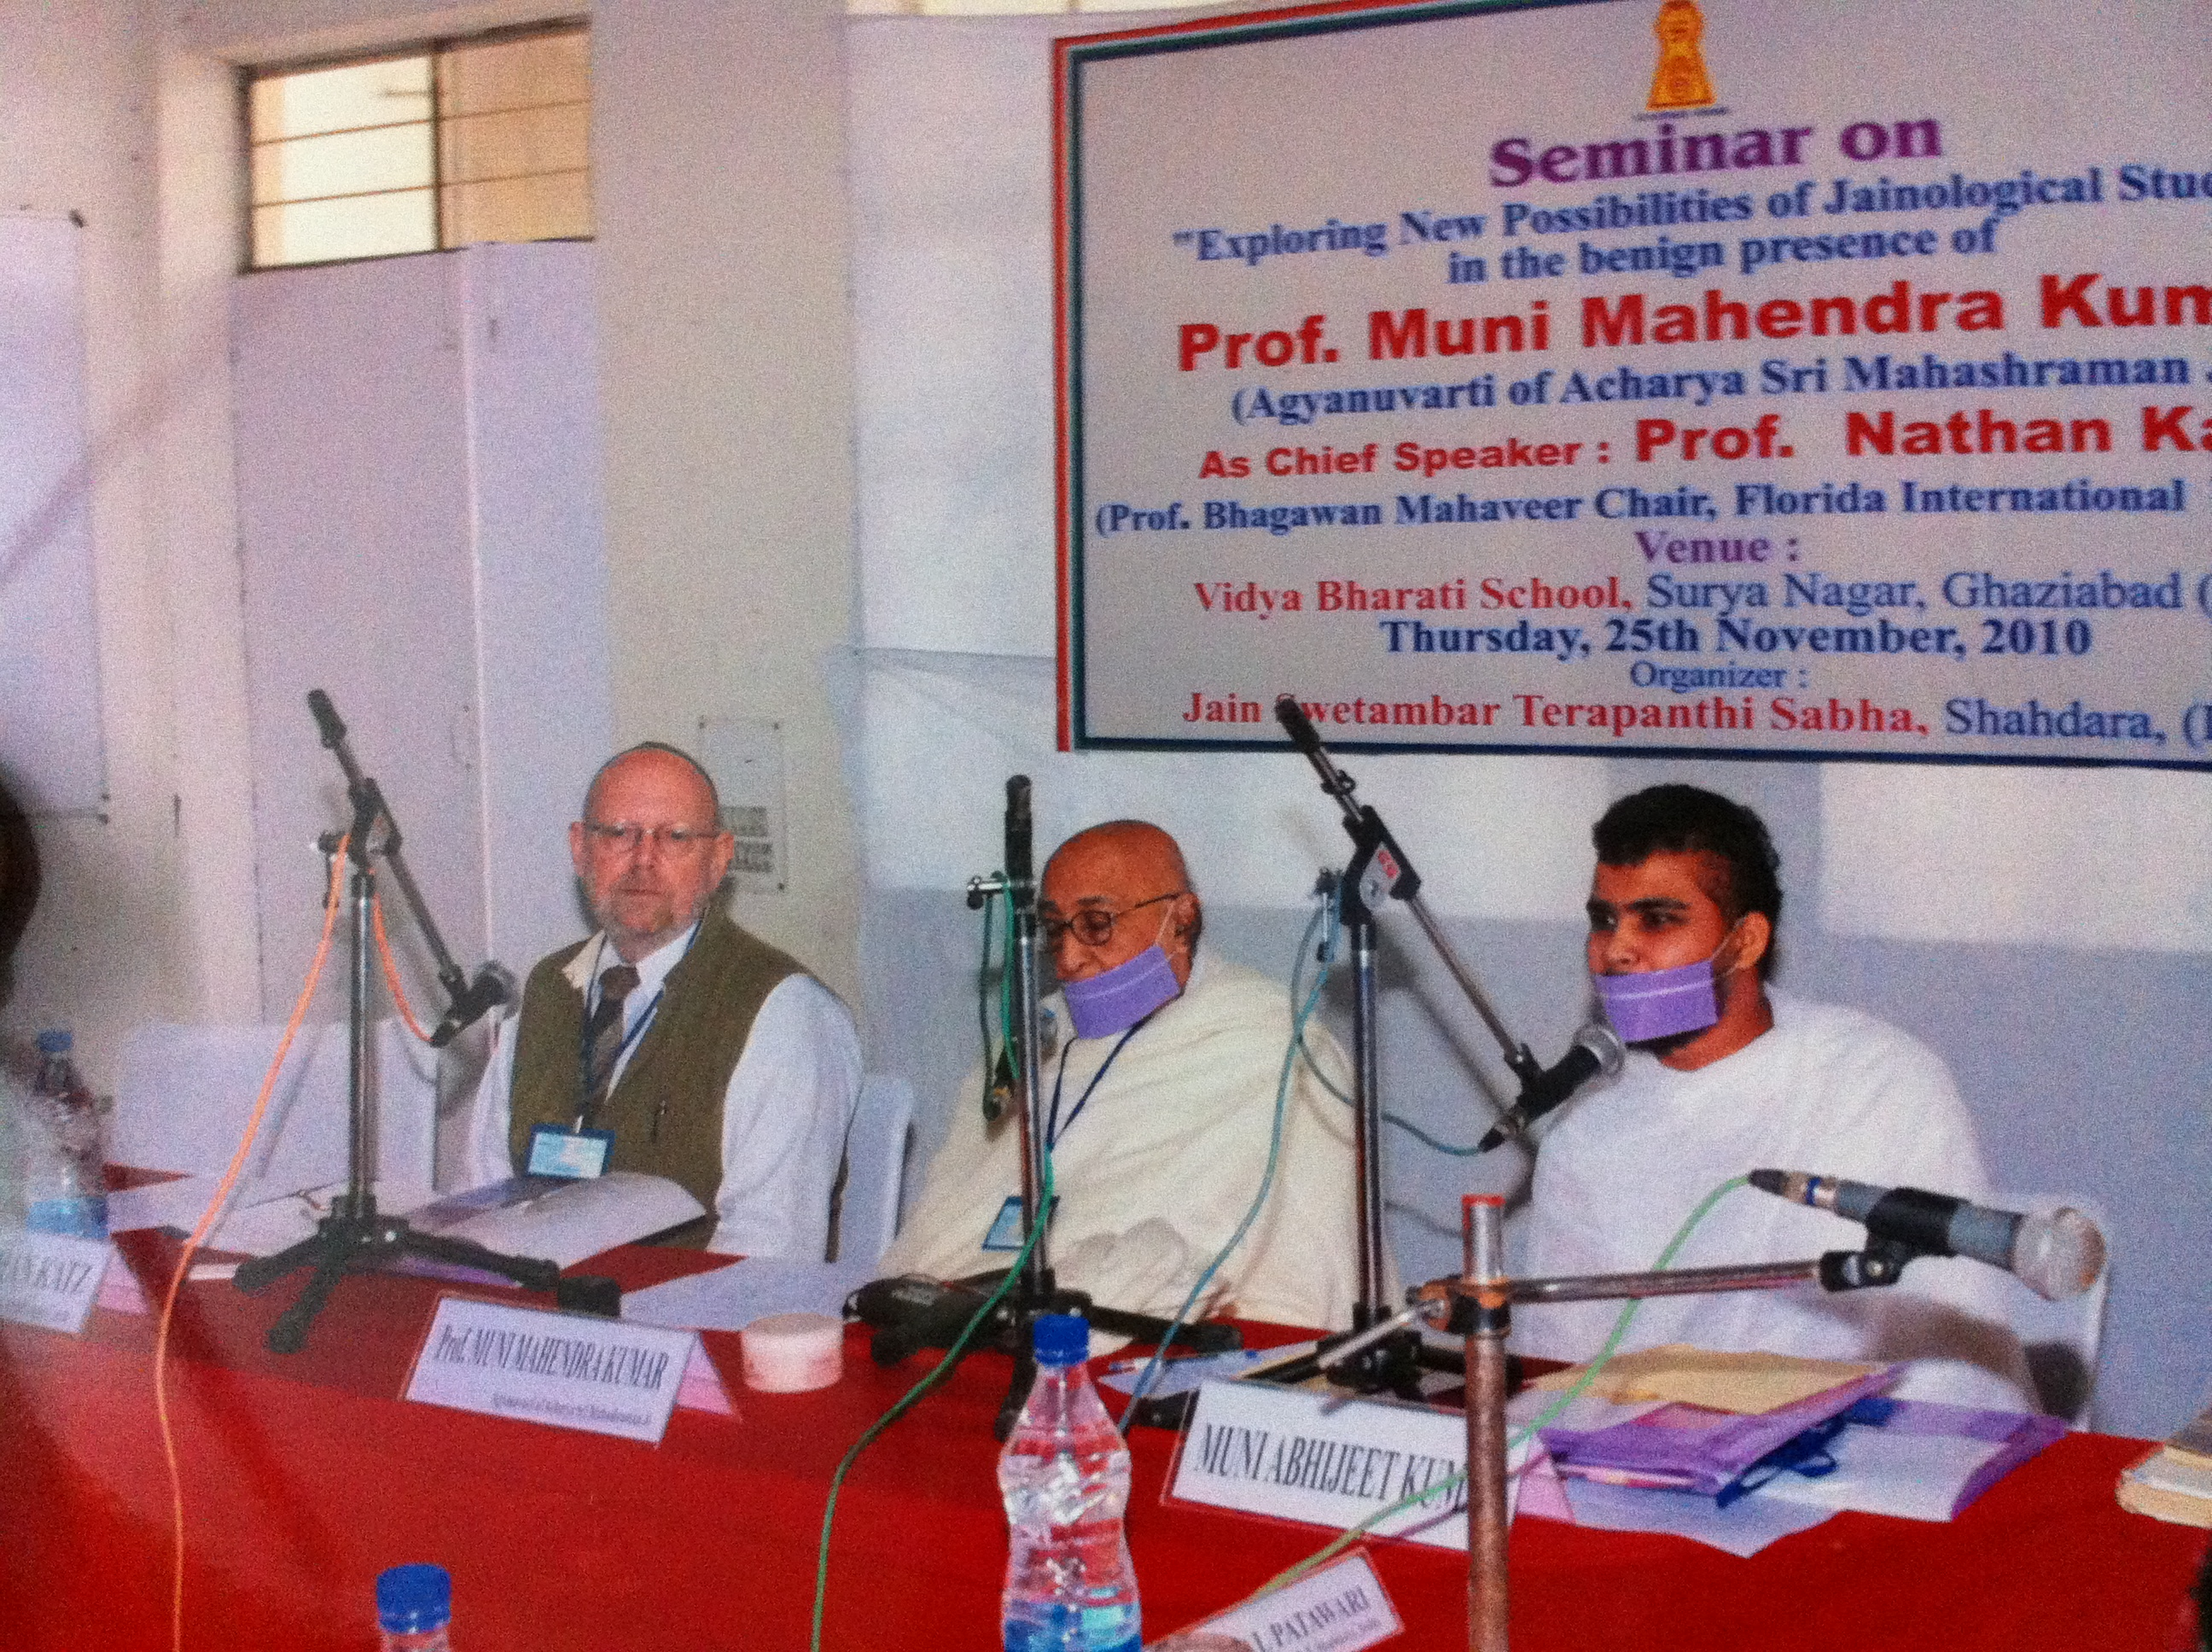 http://www.herenow4u.net/fileadmin/v3media/pics/organisations/Jain_Education_and_Research_Foundation/2010-11_Dr._Nathan_Katz_Visits_India/2010-11-25_Delhi_-_Seminar_and_Meeting_with_Prof._Muni_Mahendra_Kumar04.JPG